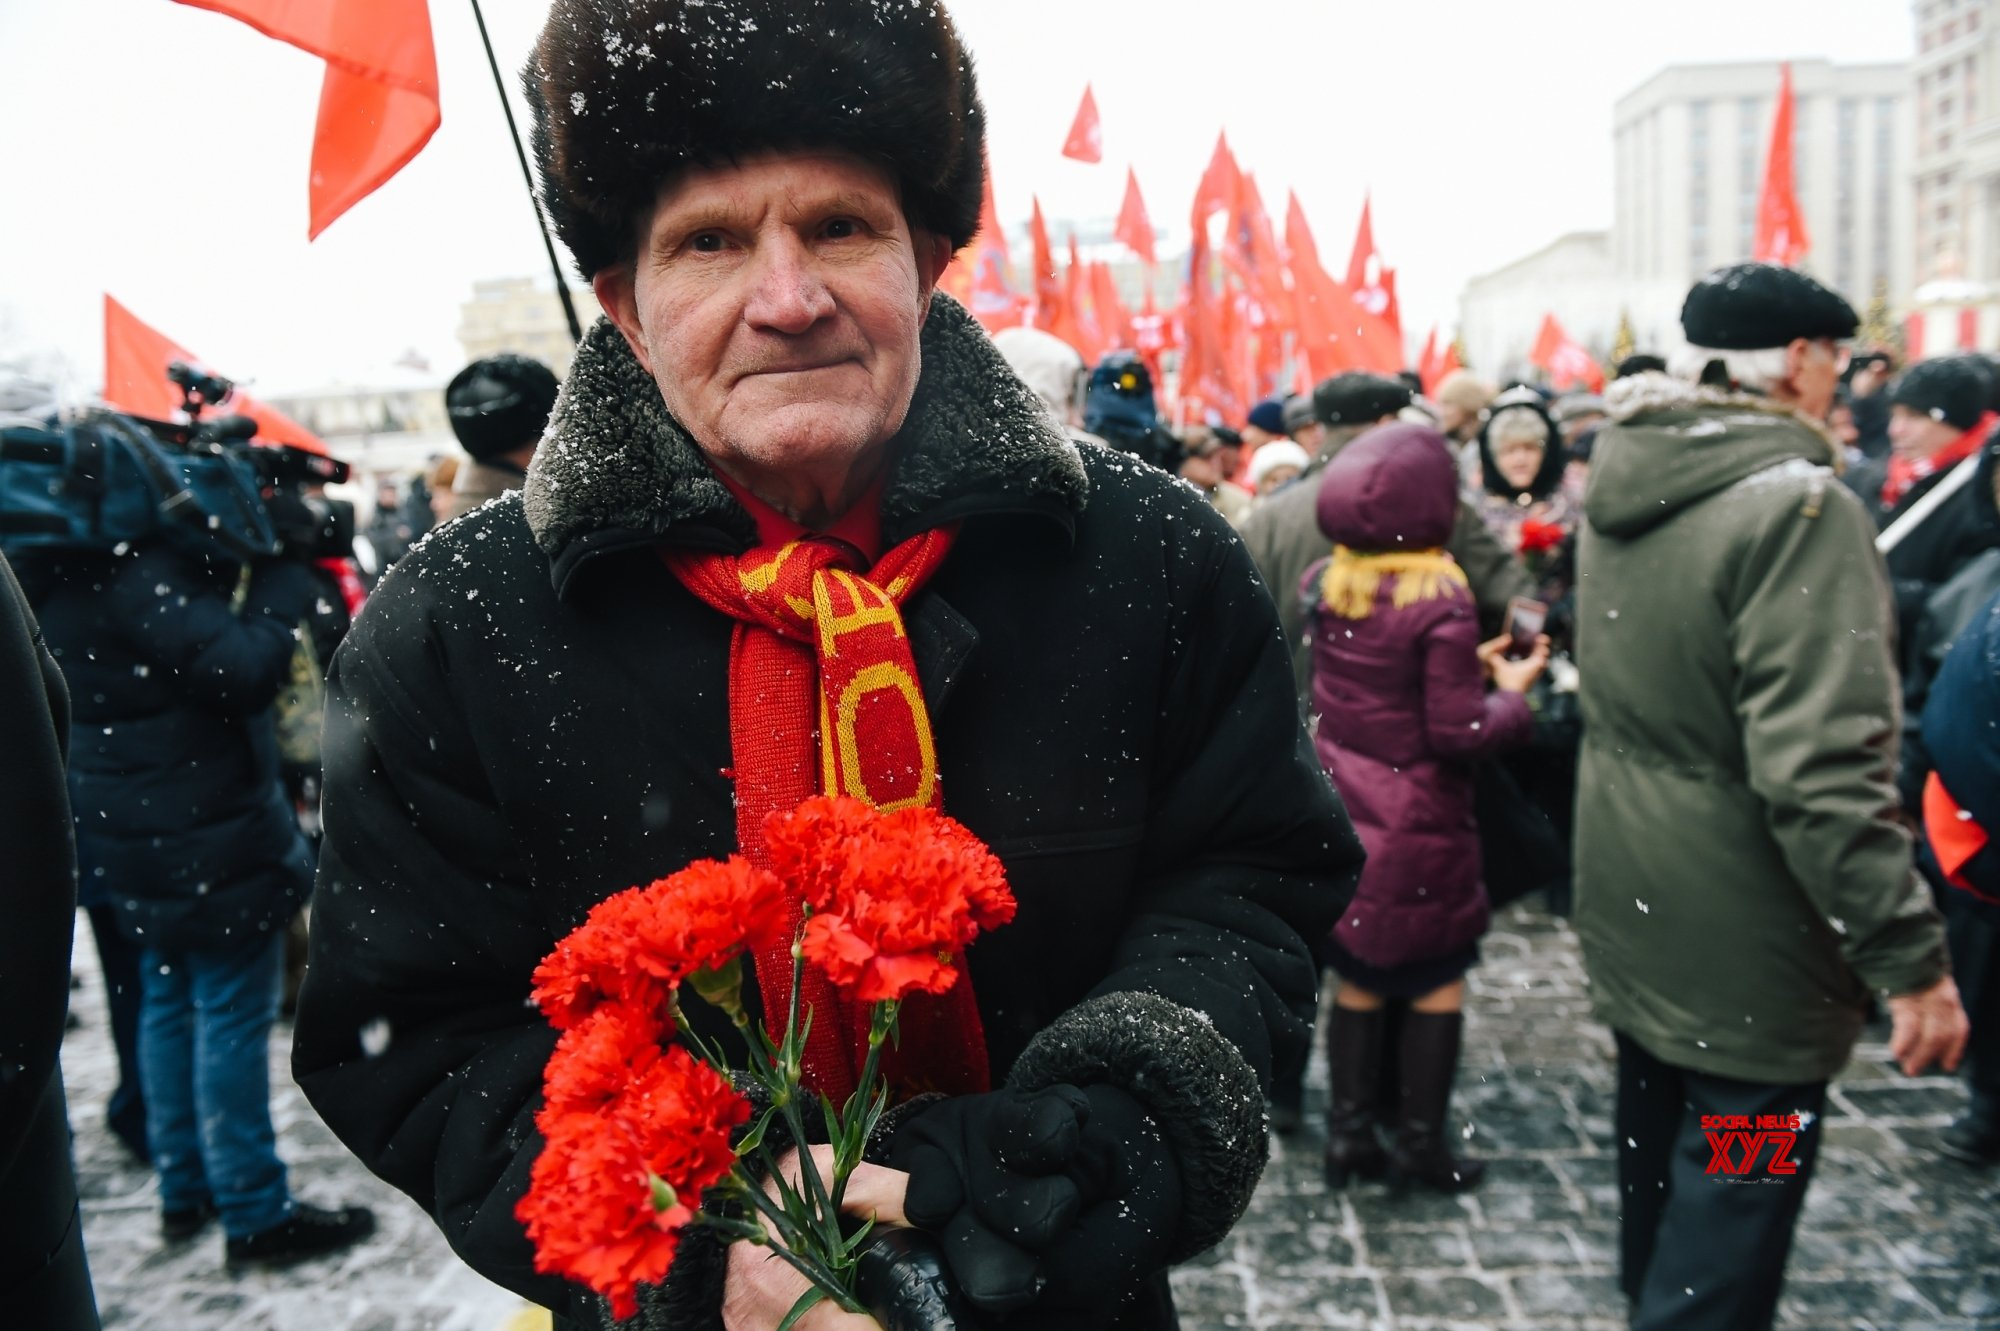 RUSSIA - MOSCOW - LENIN - ANNIVERSARY #Gallery